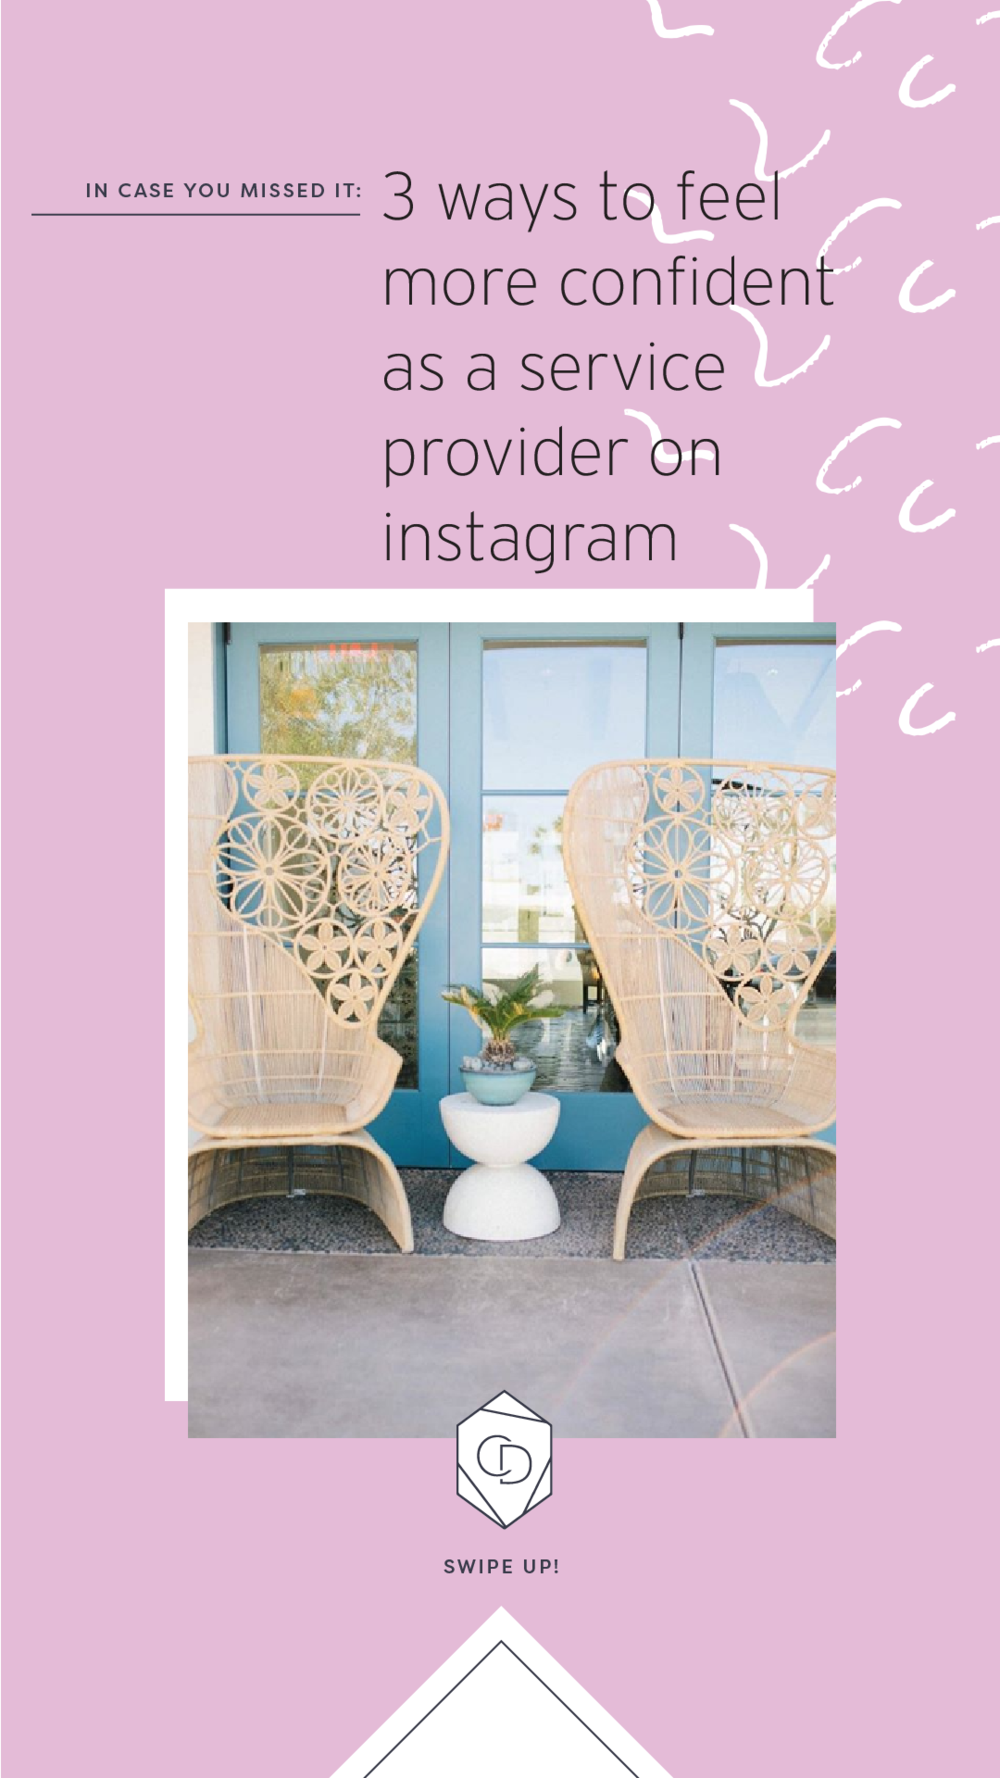 3 Ways to Feel More Confident as a Service Provider on Instagram